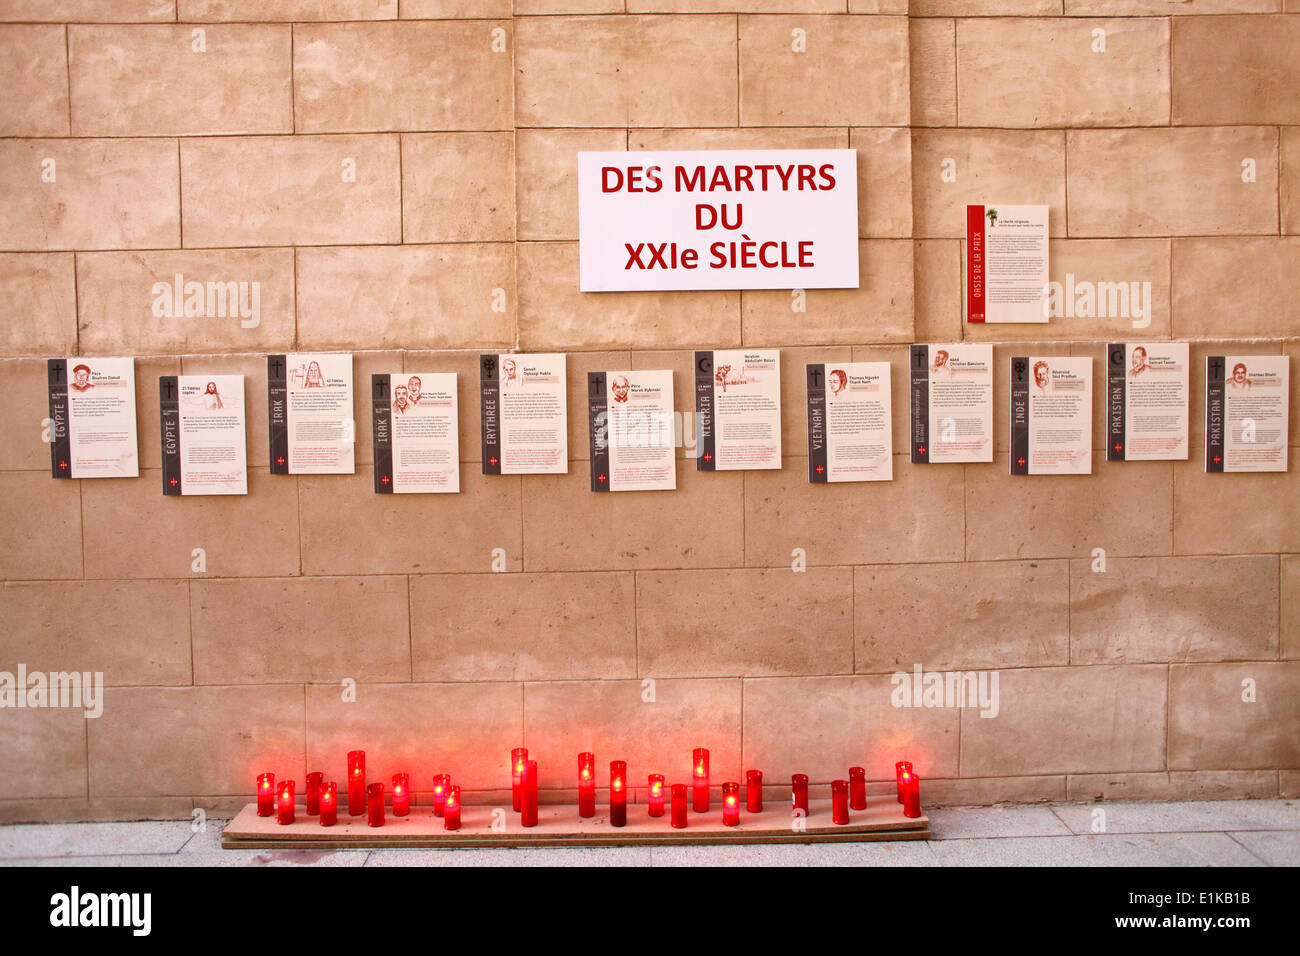 Tribute to the christian martyrs of the 21st century - Stock Image